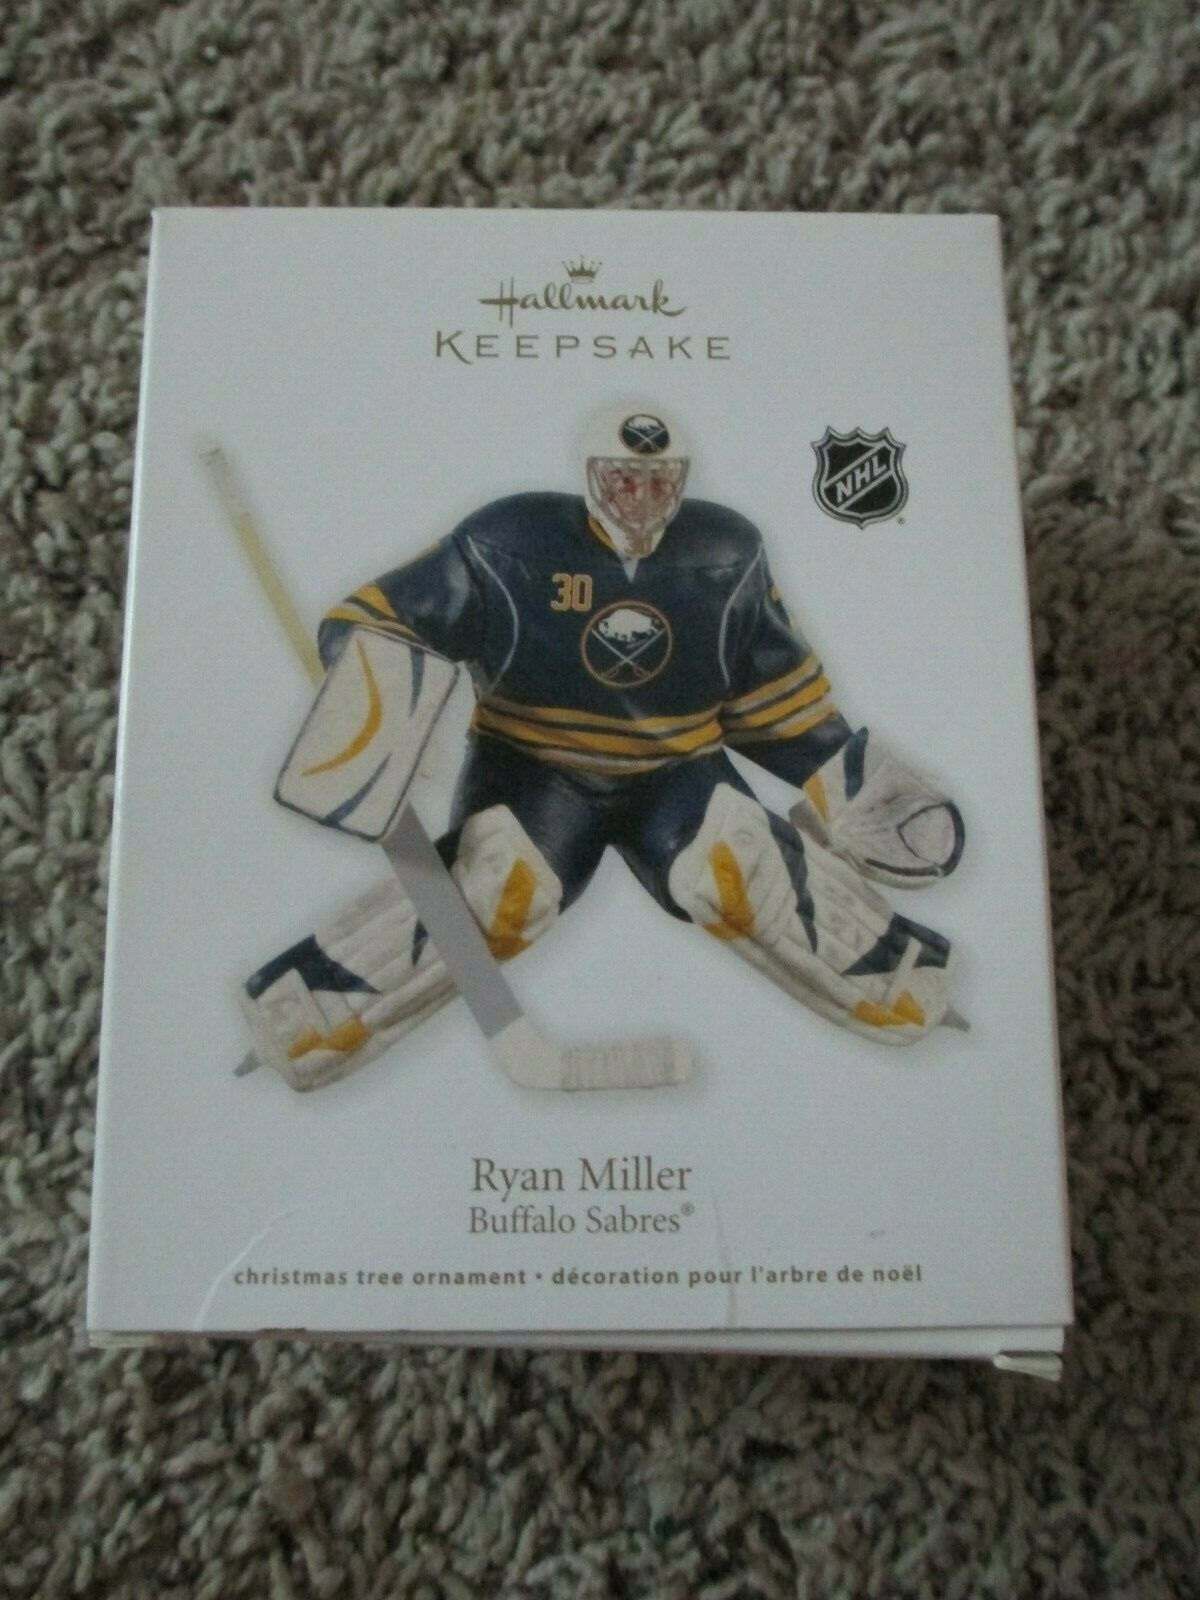 Hallmark Keepsake Nhl Ryan Miller Buffalo Saber Ornament Ebay